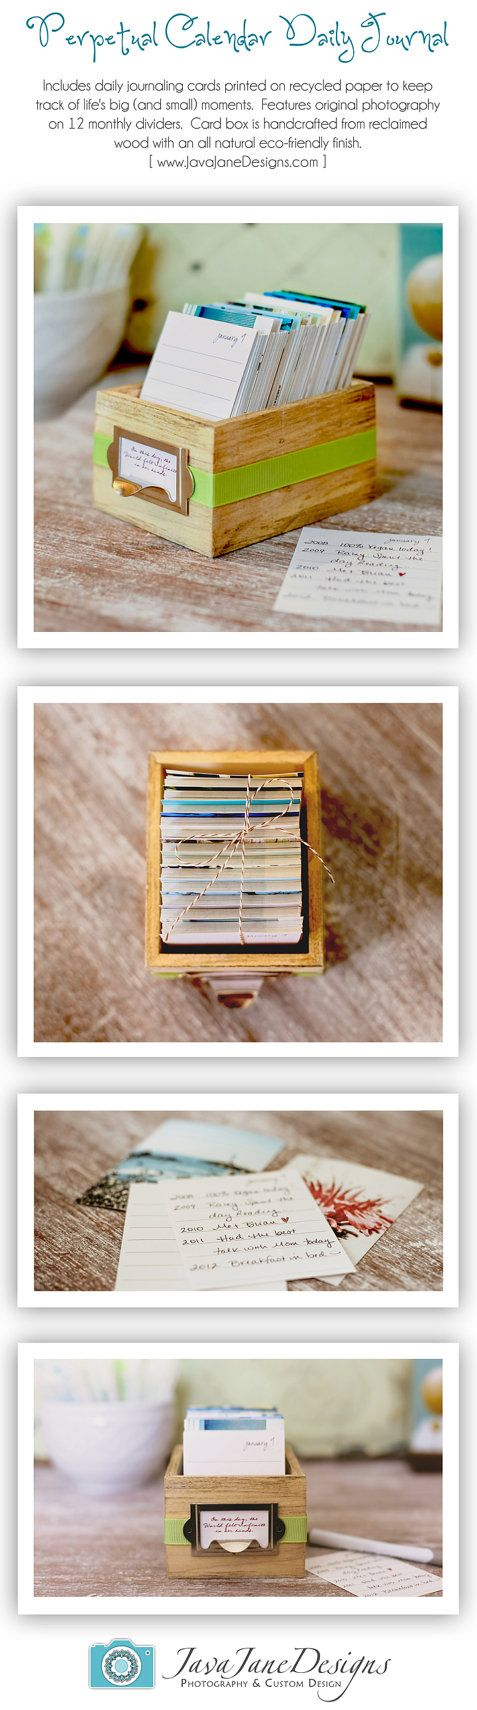 Perpetual Calendar Daily Journal with Rustic Wood Box - Earth Day Eco-Friendly Gift - 2014 Calendar